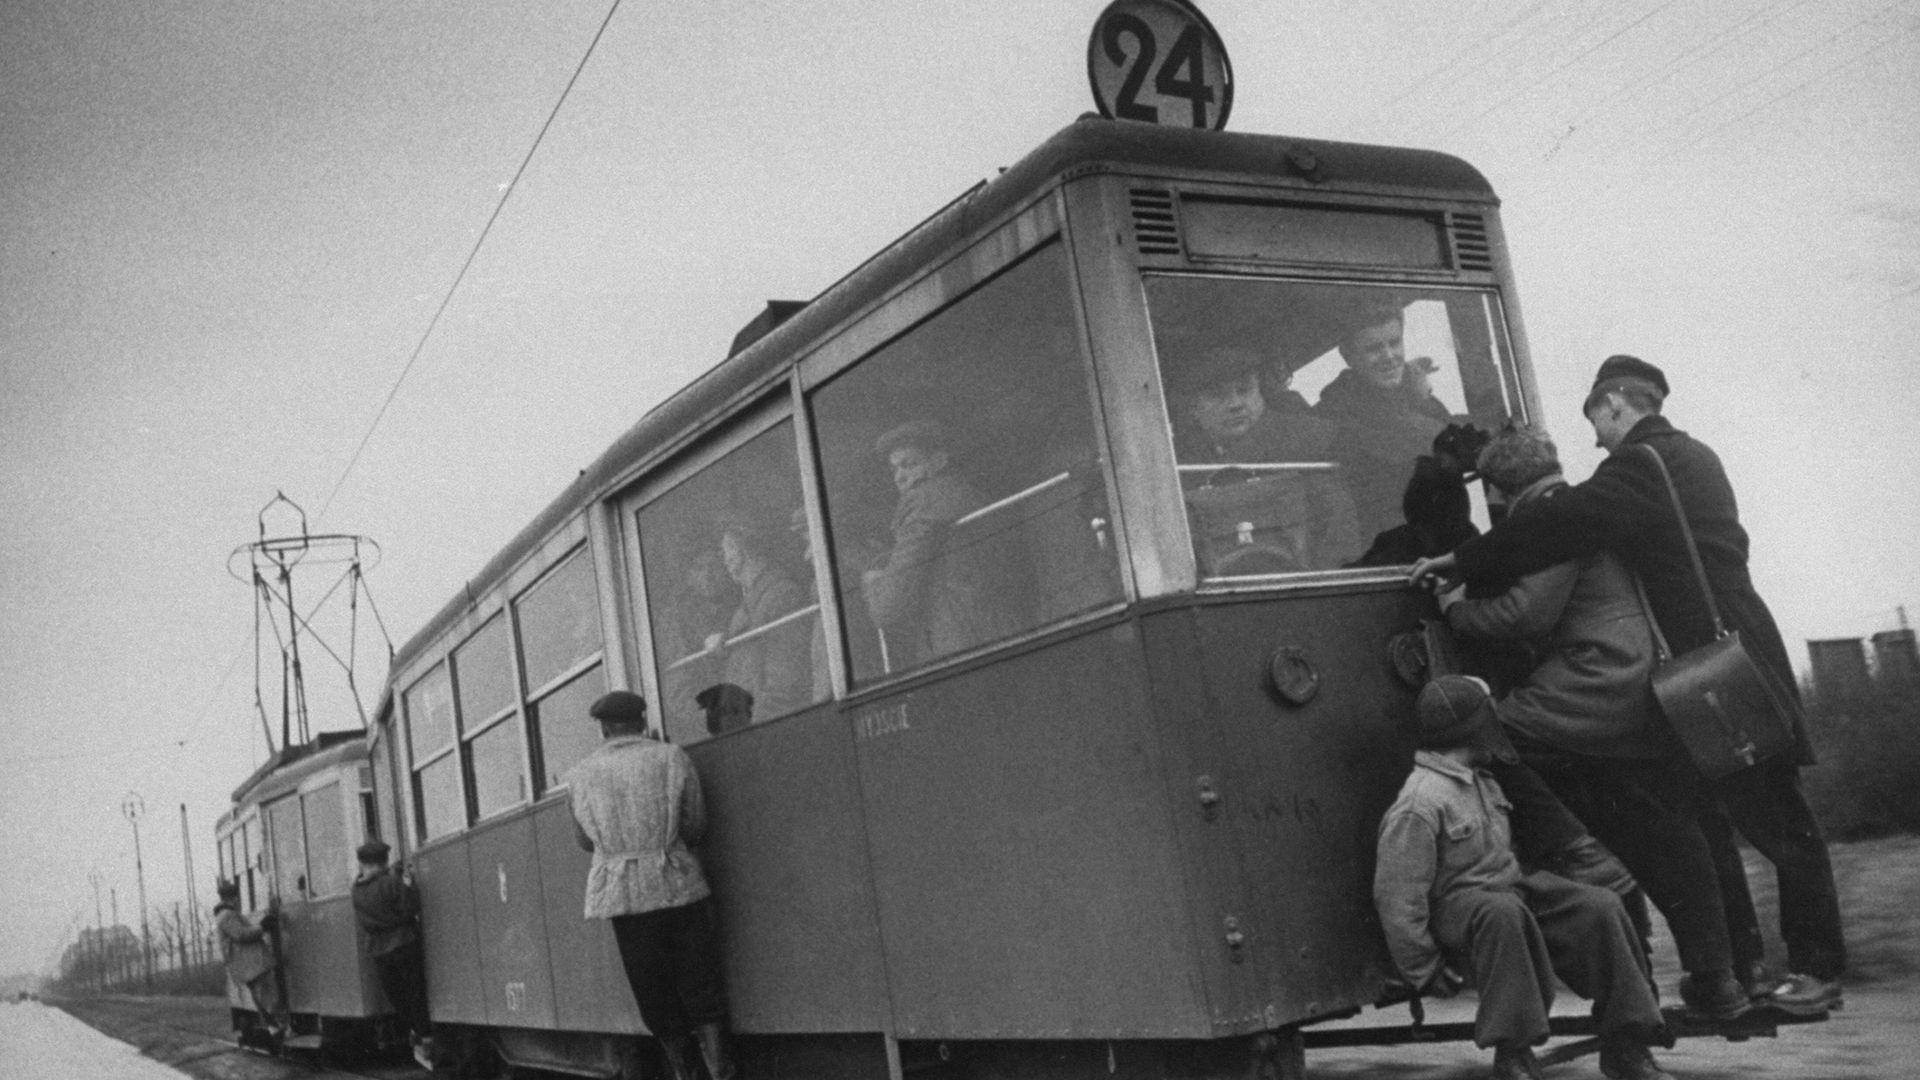 People hanging off a streetcar.